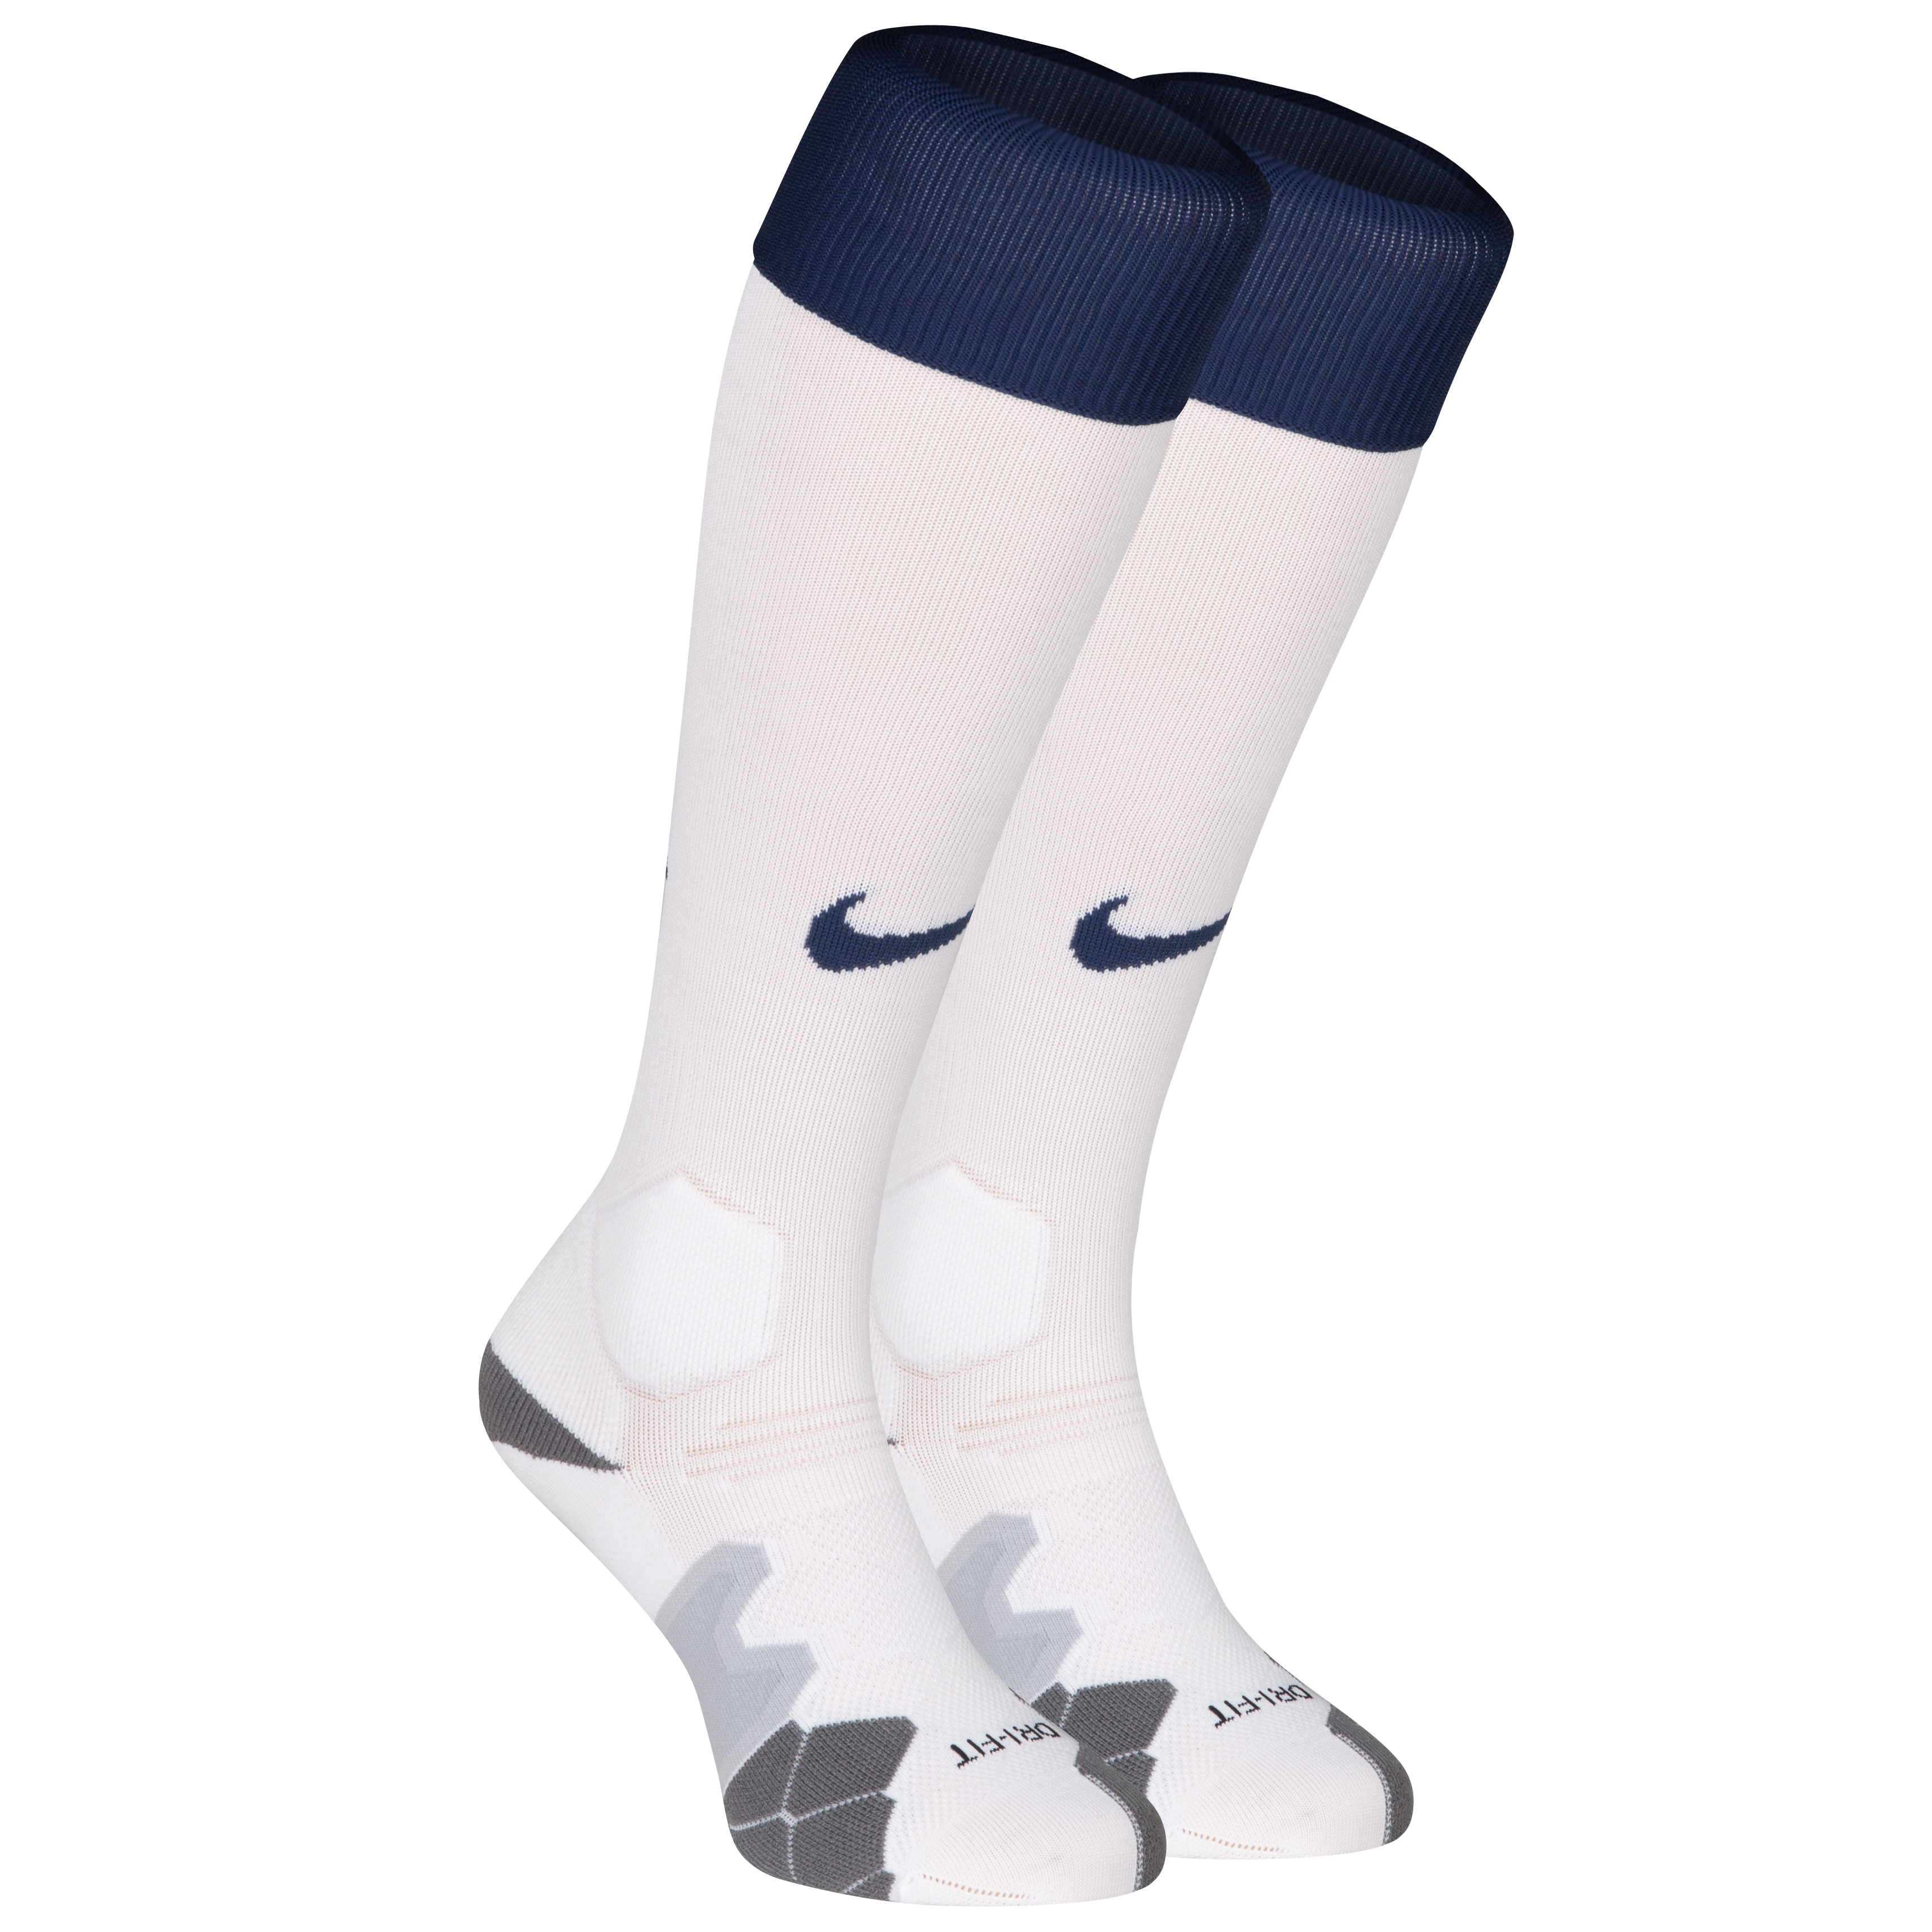 USA Home Socks 2012/13